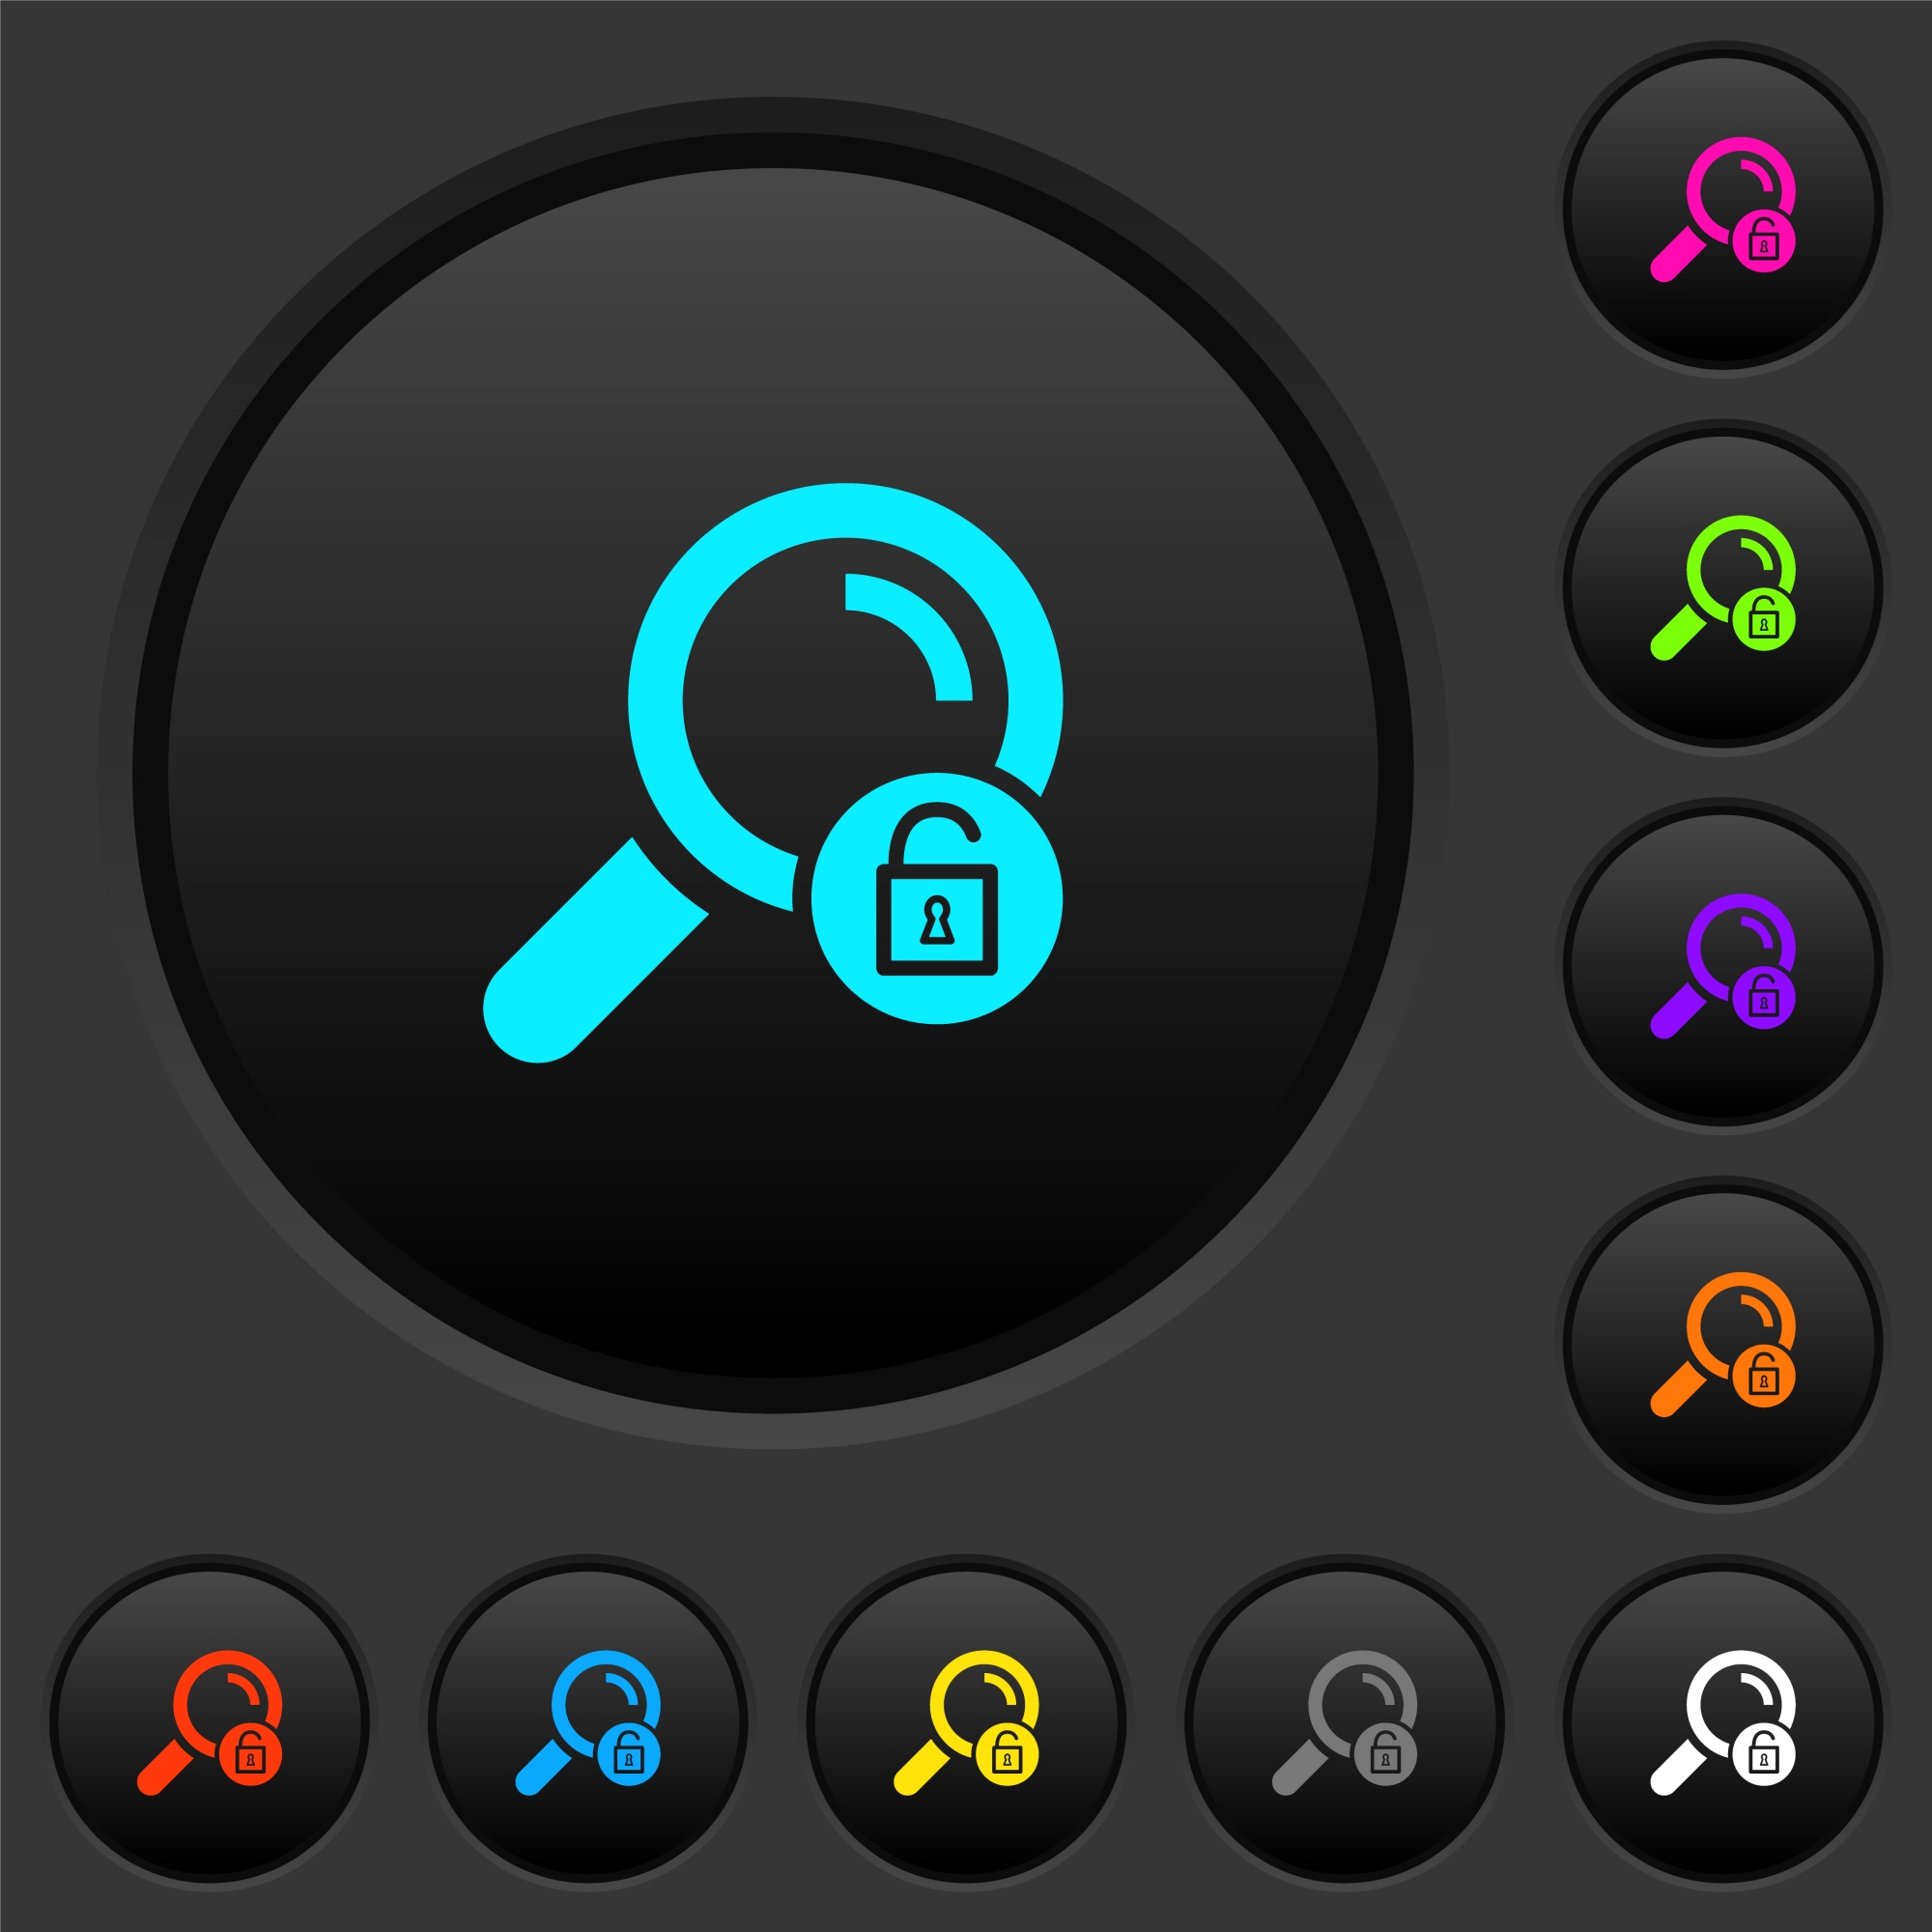 Unlock search dark push buttons with vivid color icons on dark grey background - Free image